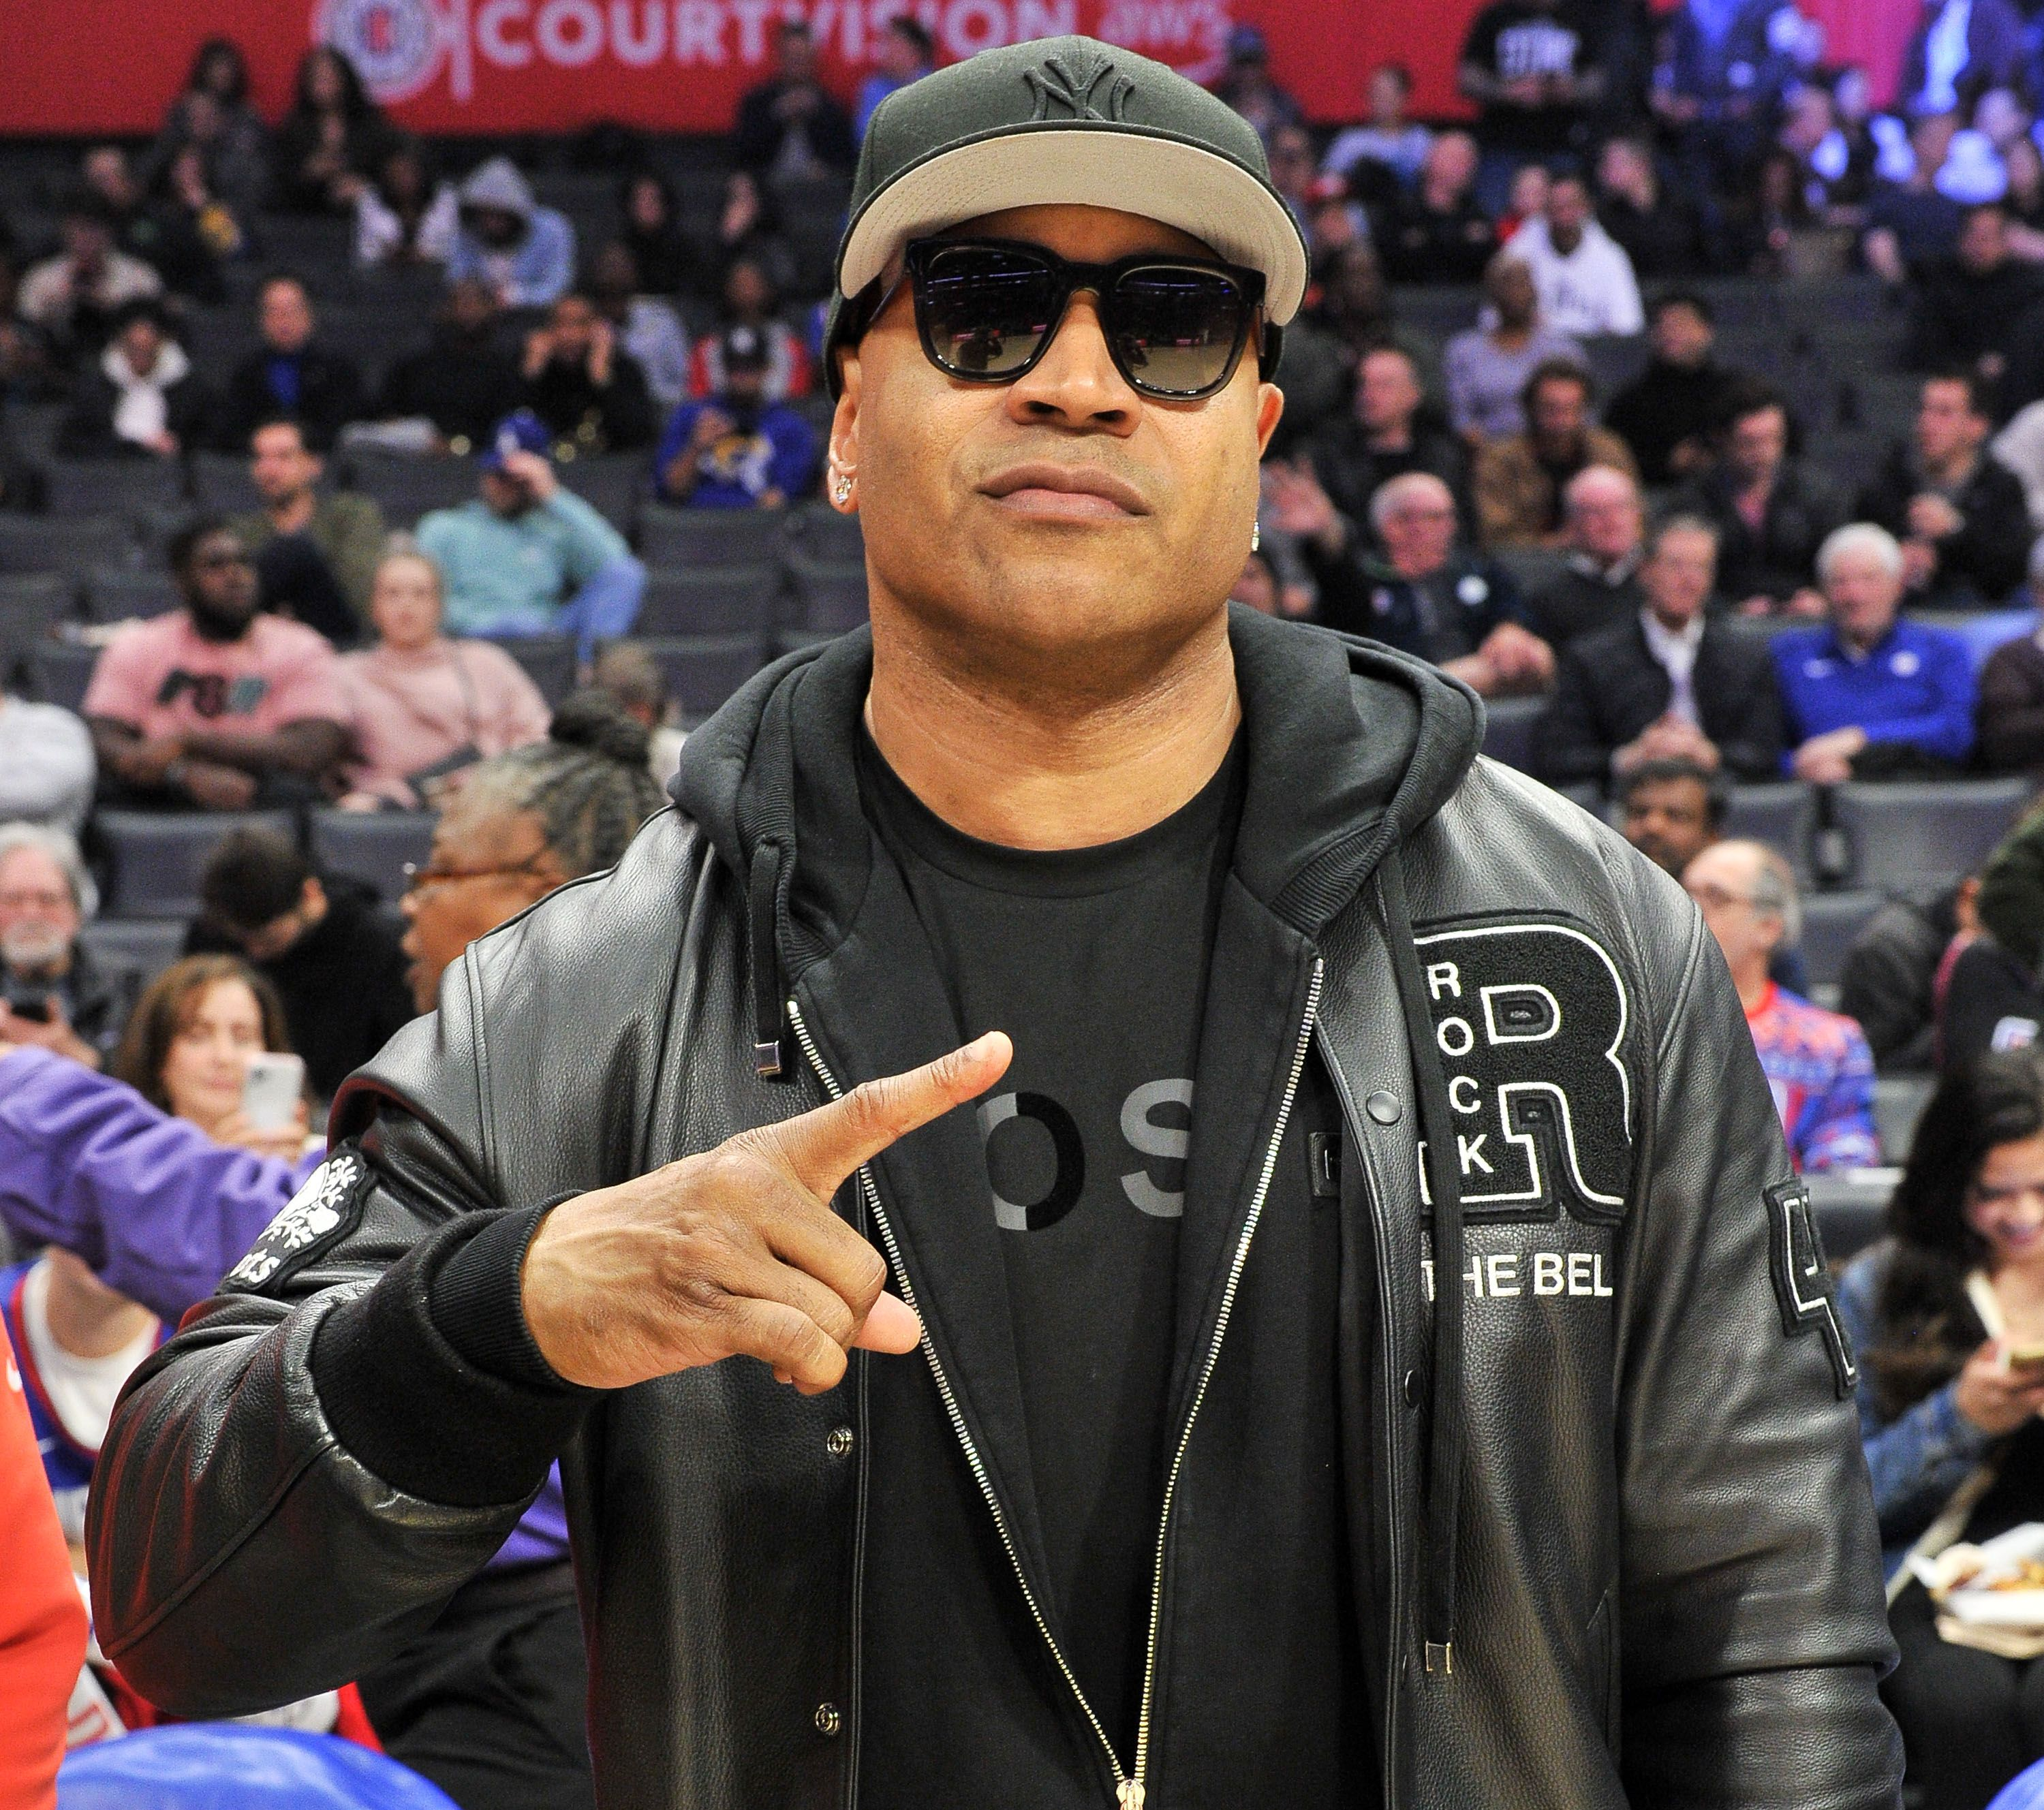 LL Cool J at a basketball game on December 17, 2019 in Los Angeles.   Photo : Getty Images